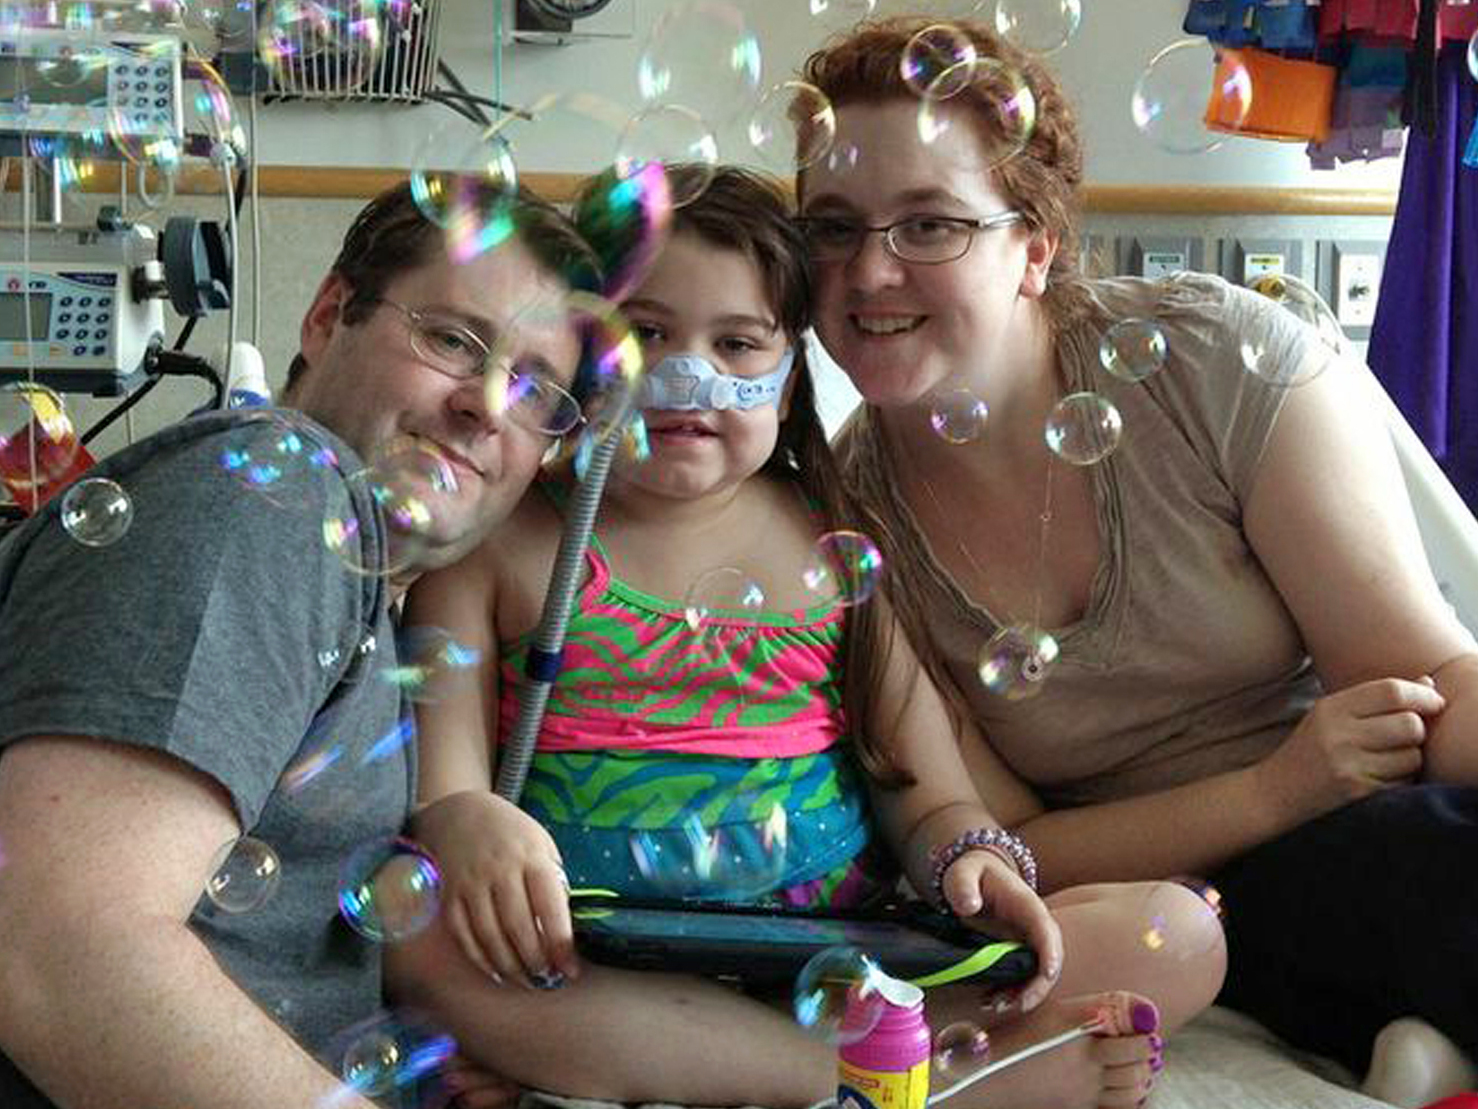 10-Year-Old Sarah Murnaghan Will Receive Lung Transplant